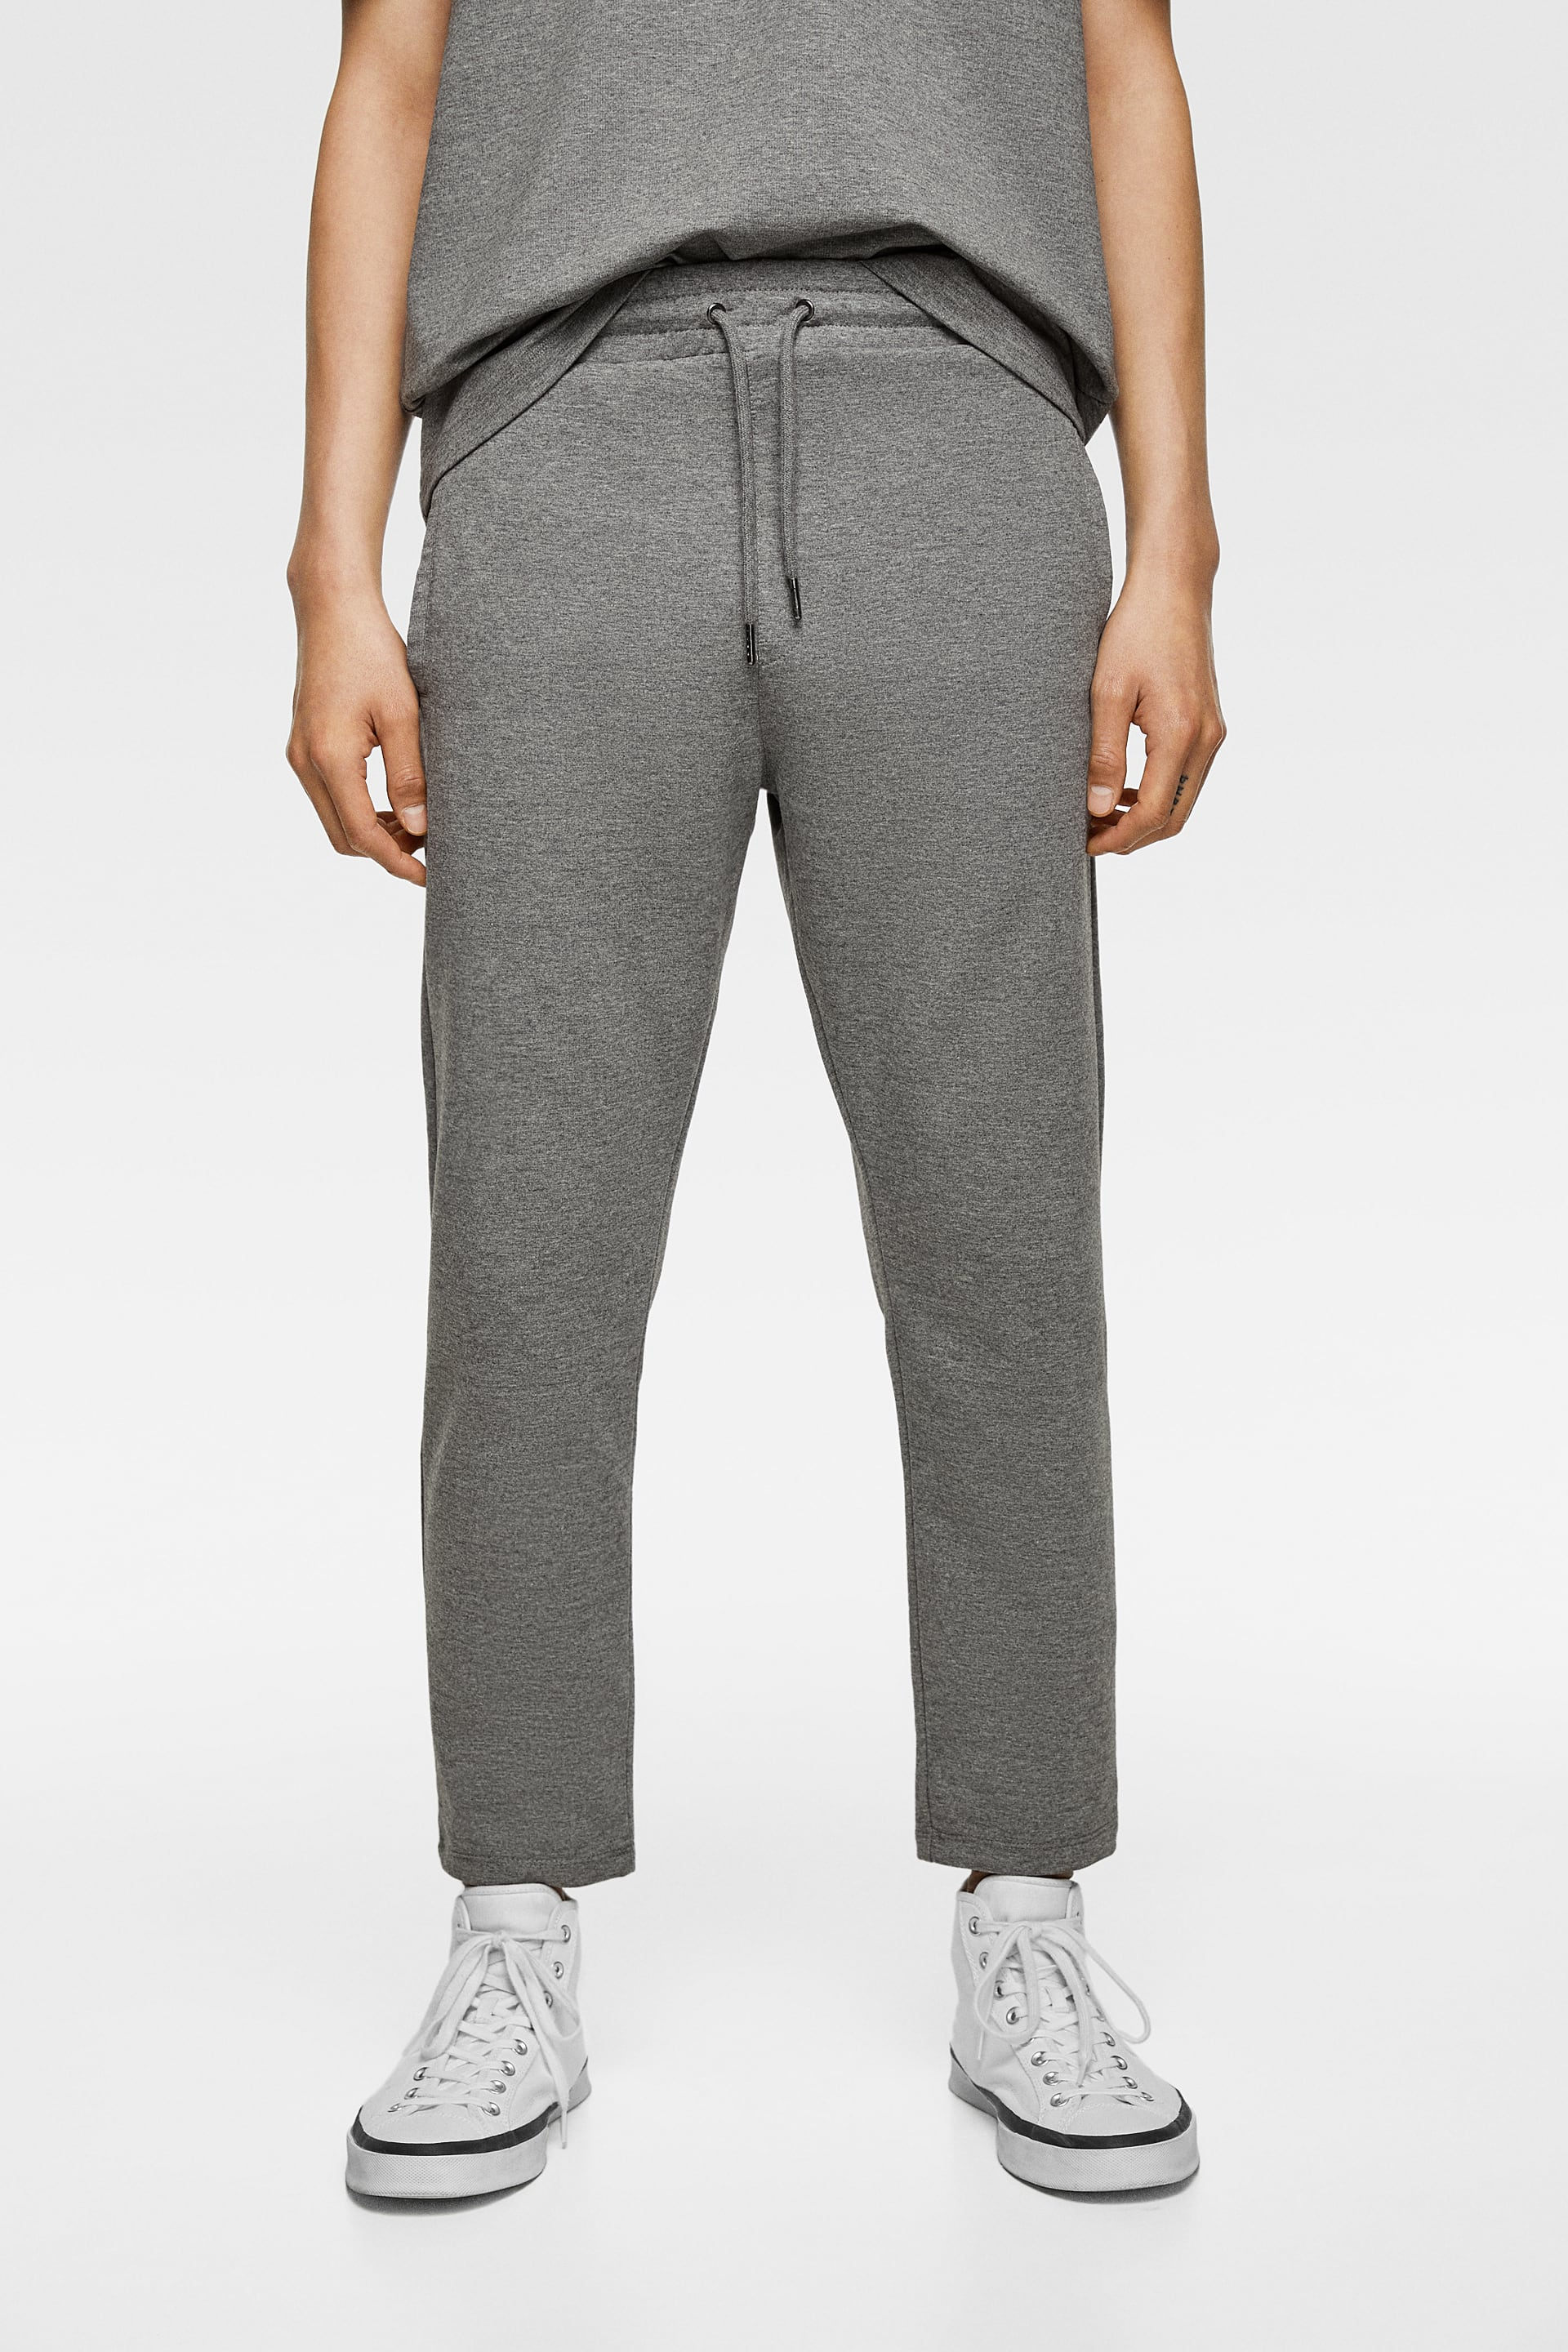 f41beef2b PREMIUM JOGGERS - PREMIUM-SHOP BY COLLECTION-MAN